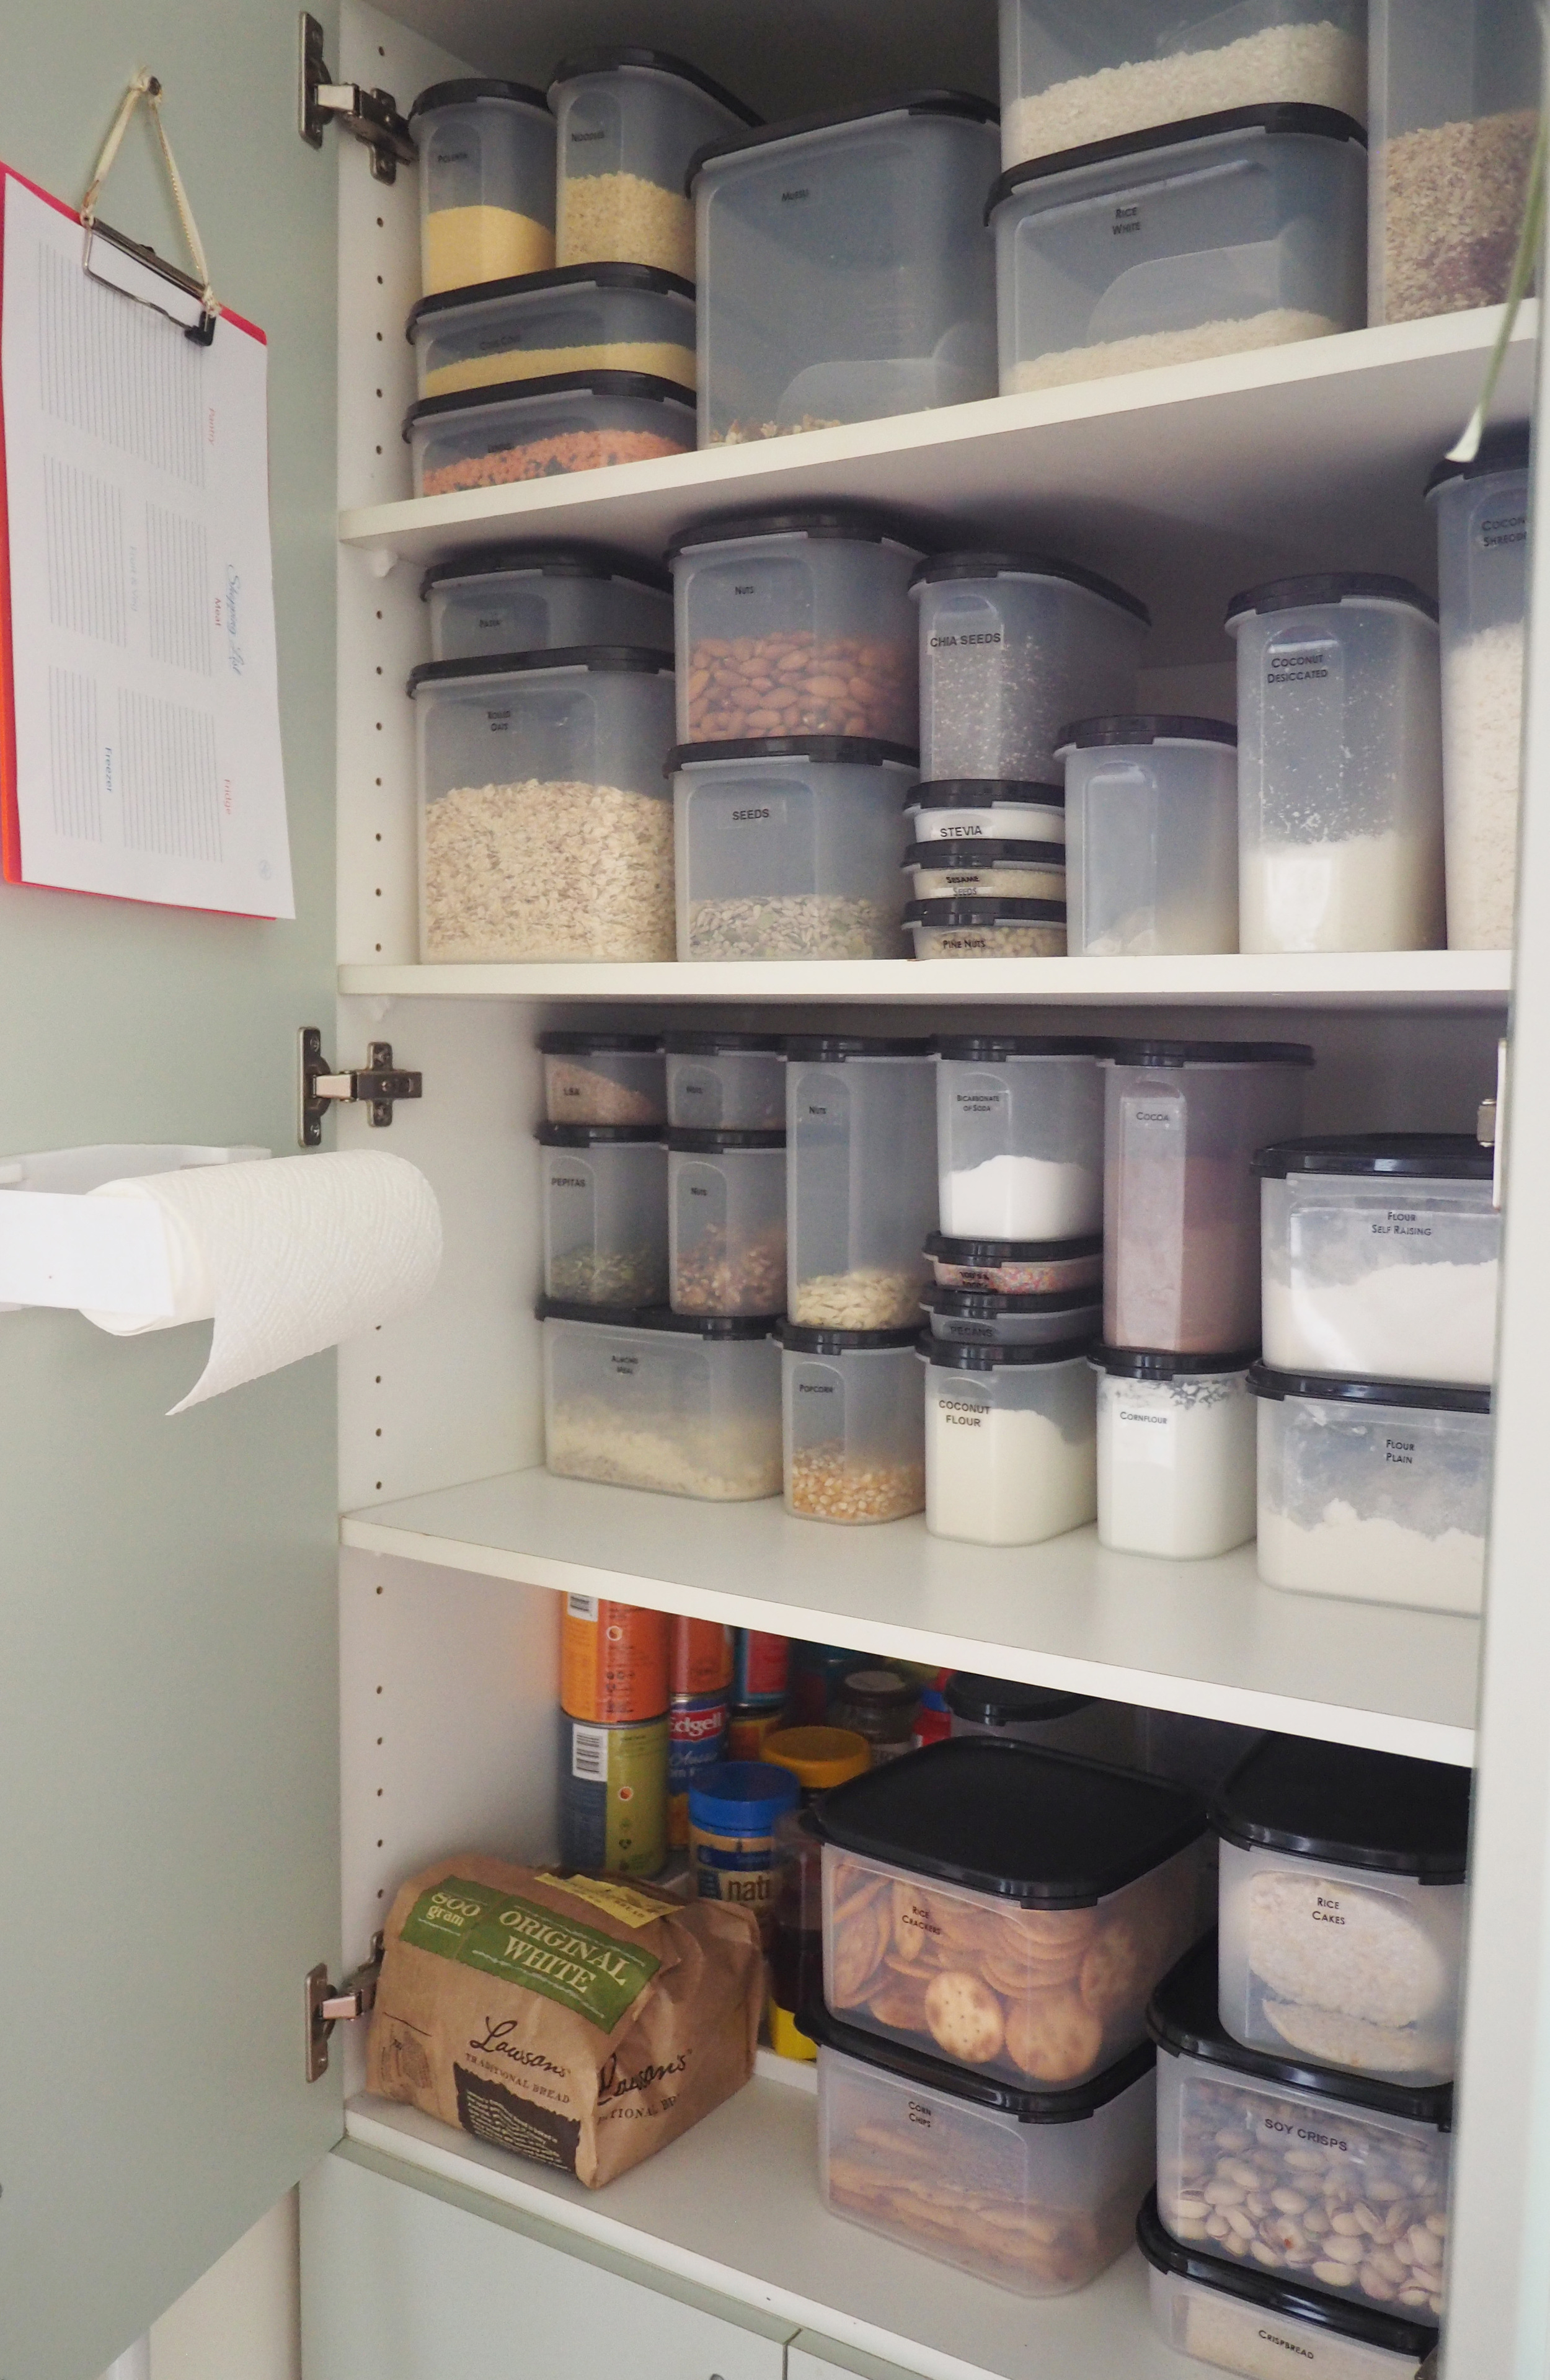 An organised pantry using air-tight containers to store food items according to type and create an easy-to-use, accessible, neat and organised pantry